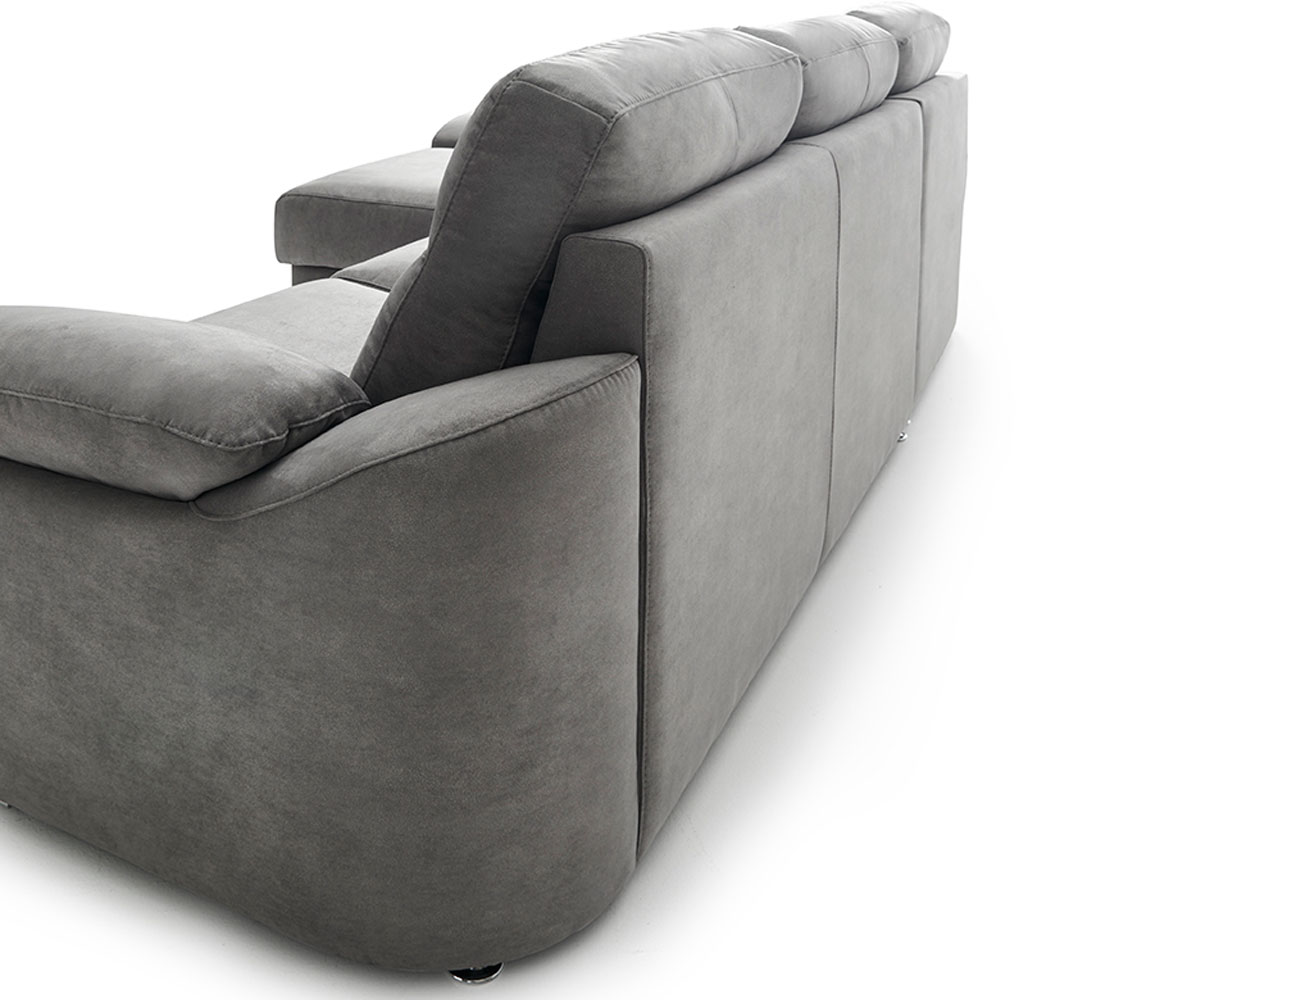 Sofa chaiselongue asientos viscolastica pedro ortiz 2